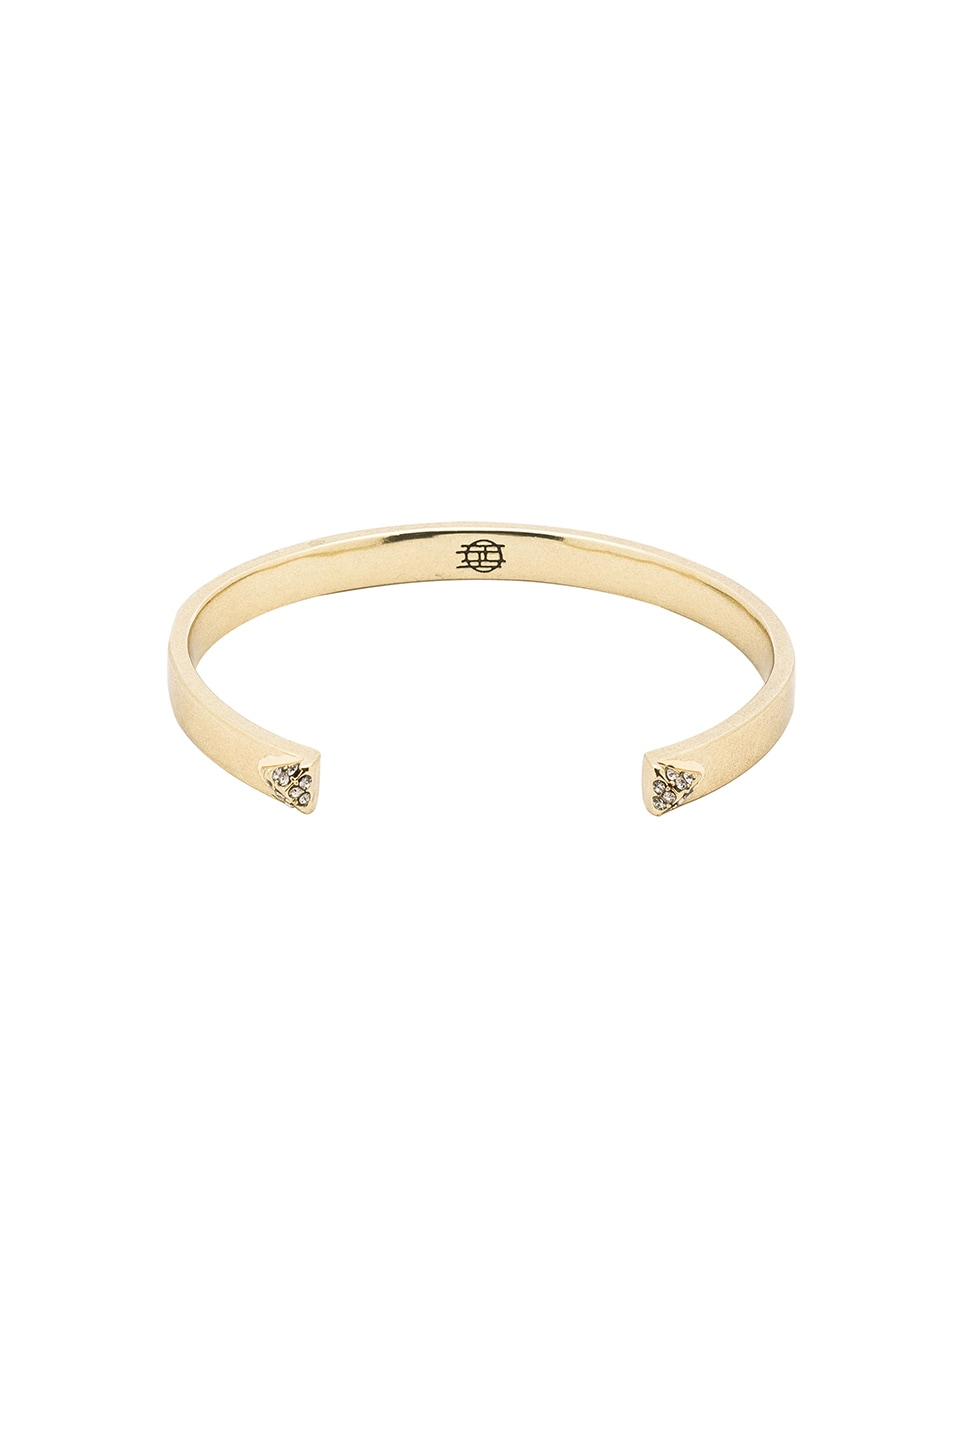 House of Harlow 1960 House of Harlow Dakota Cuff in Gold